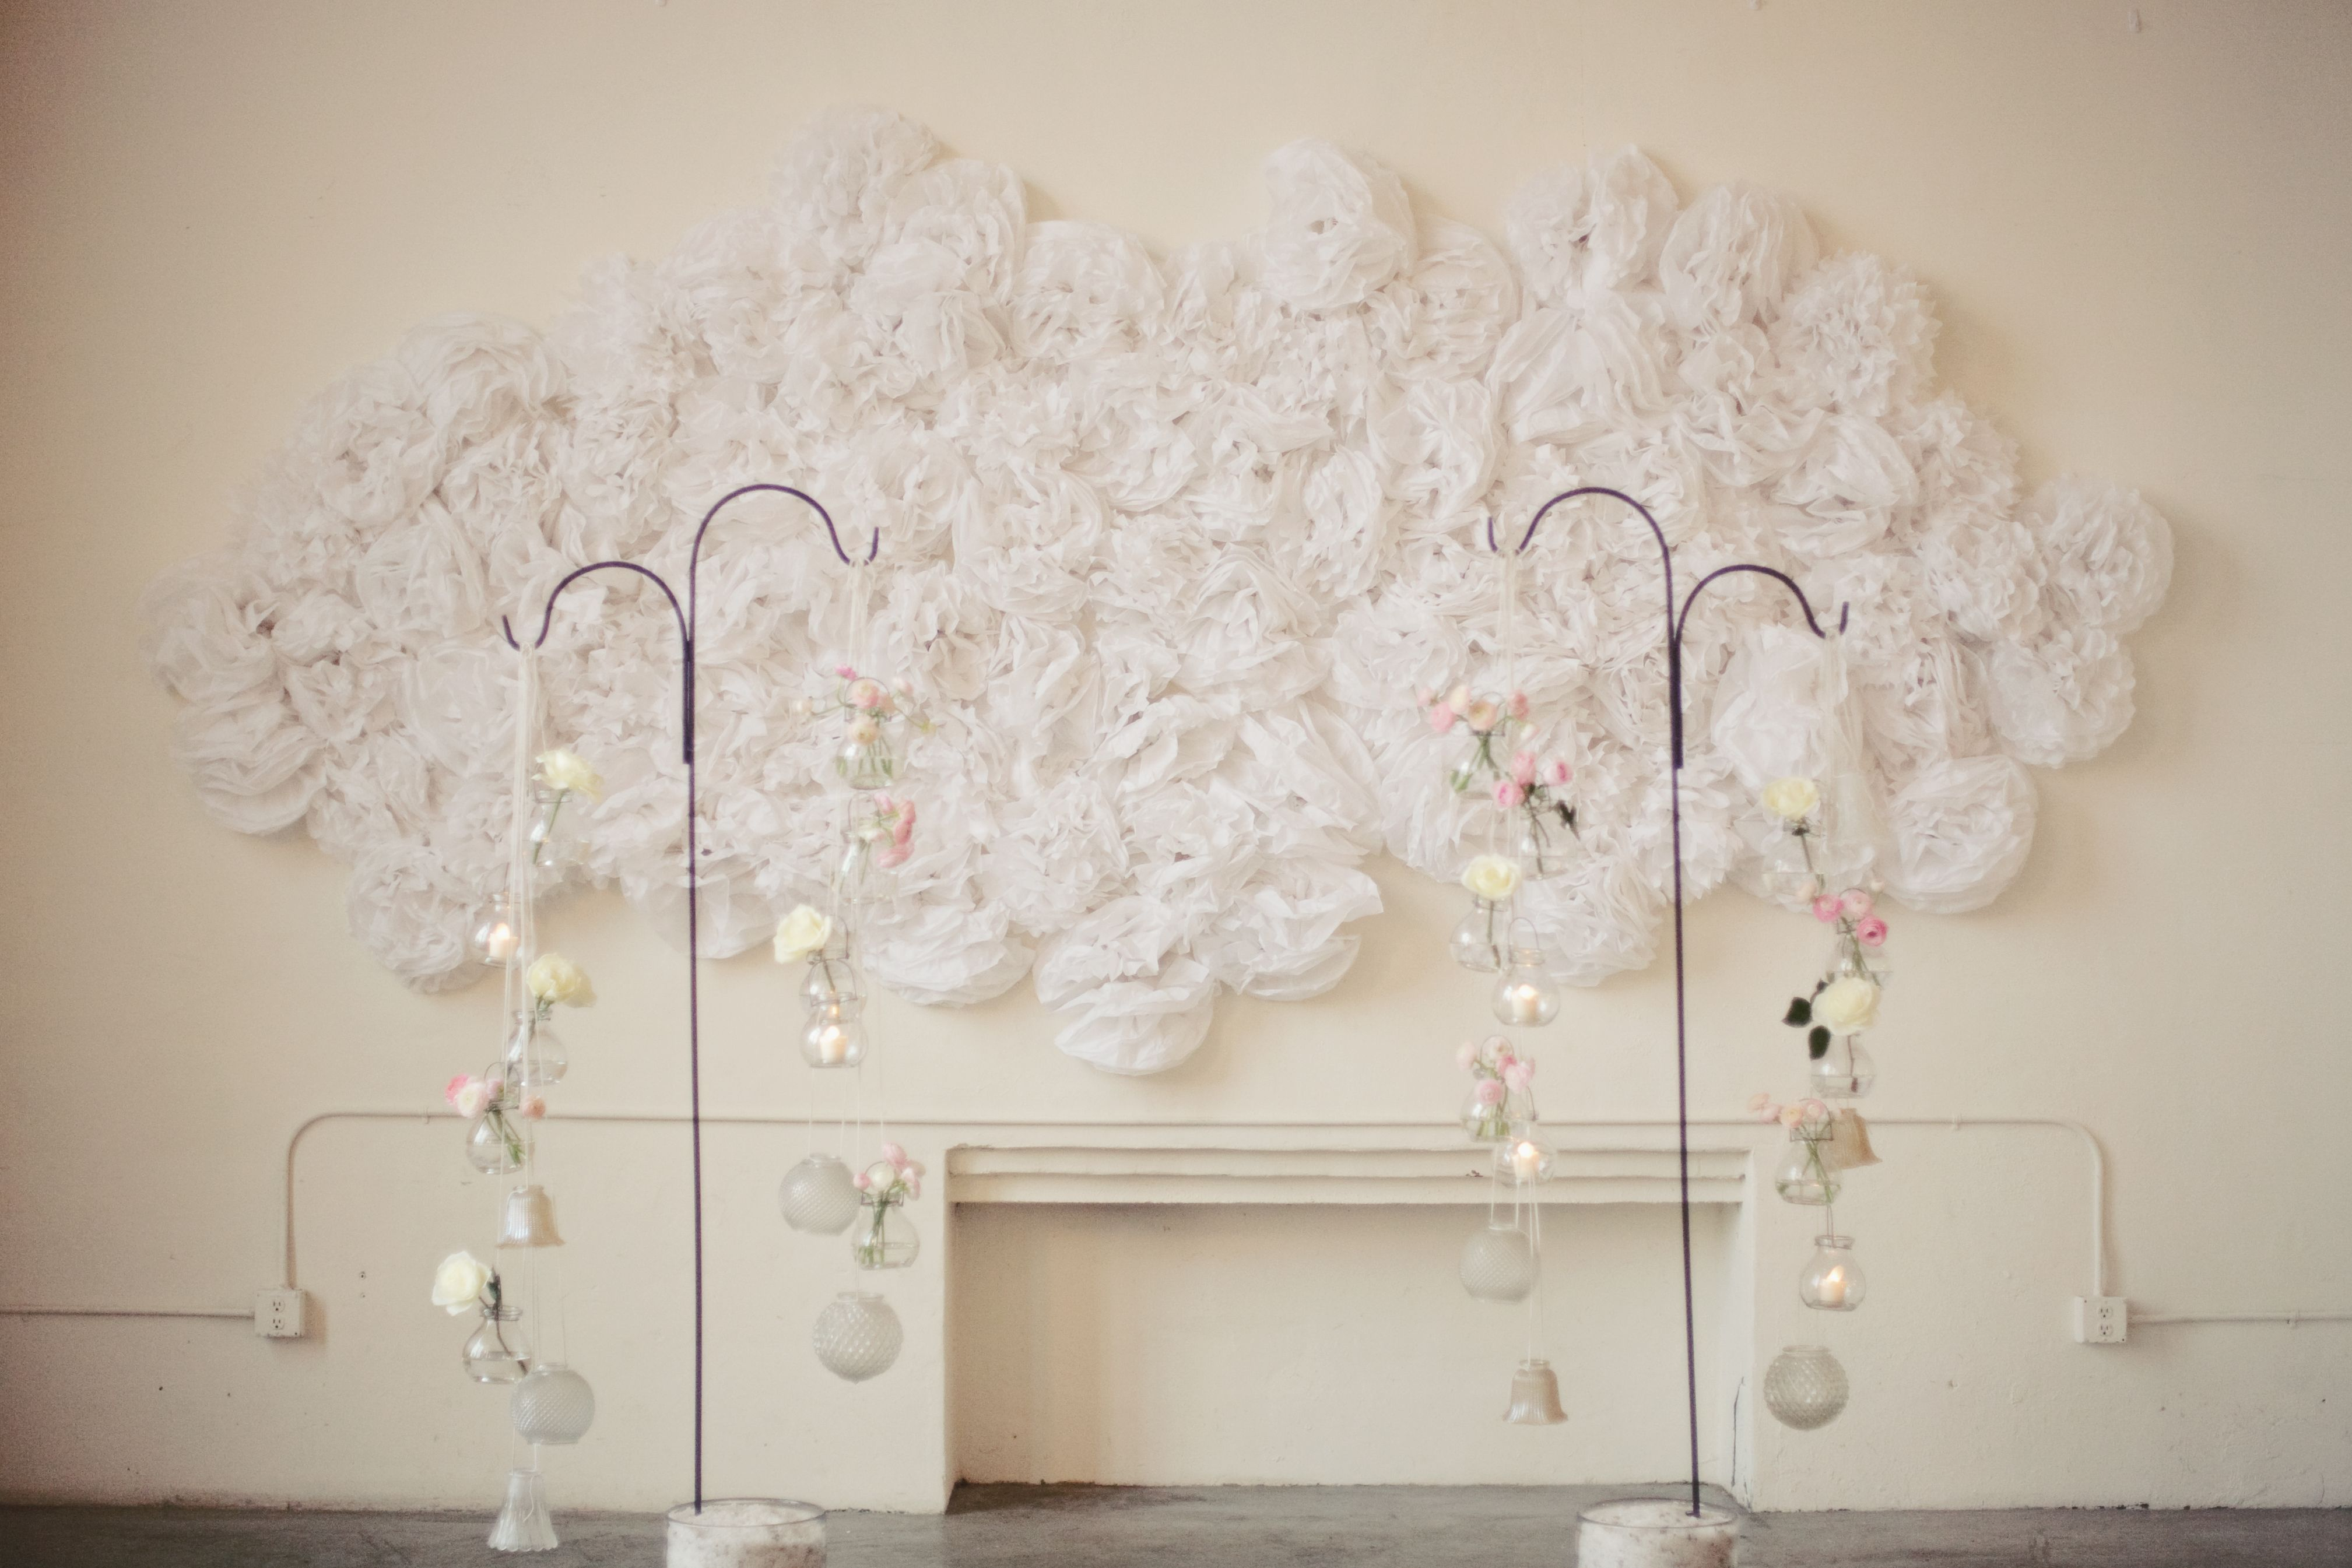 Wall Decoration For Engagement : We especially love the wedding ceremony wall decor made of